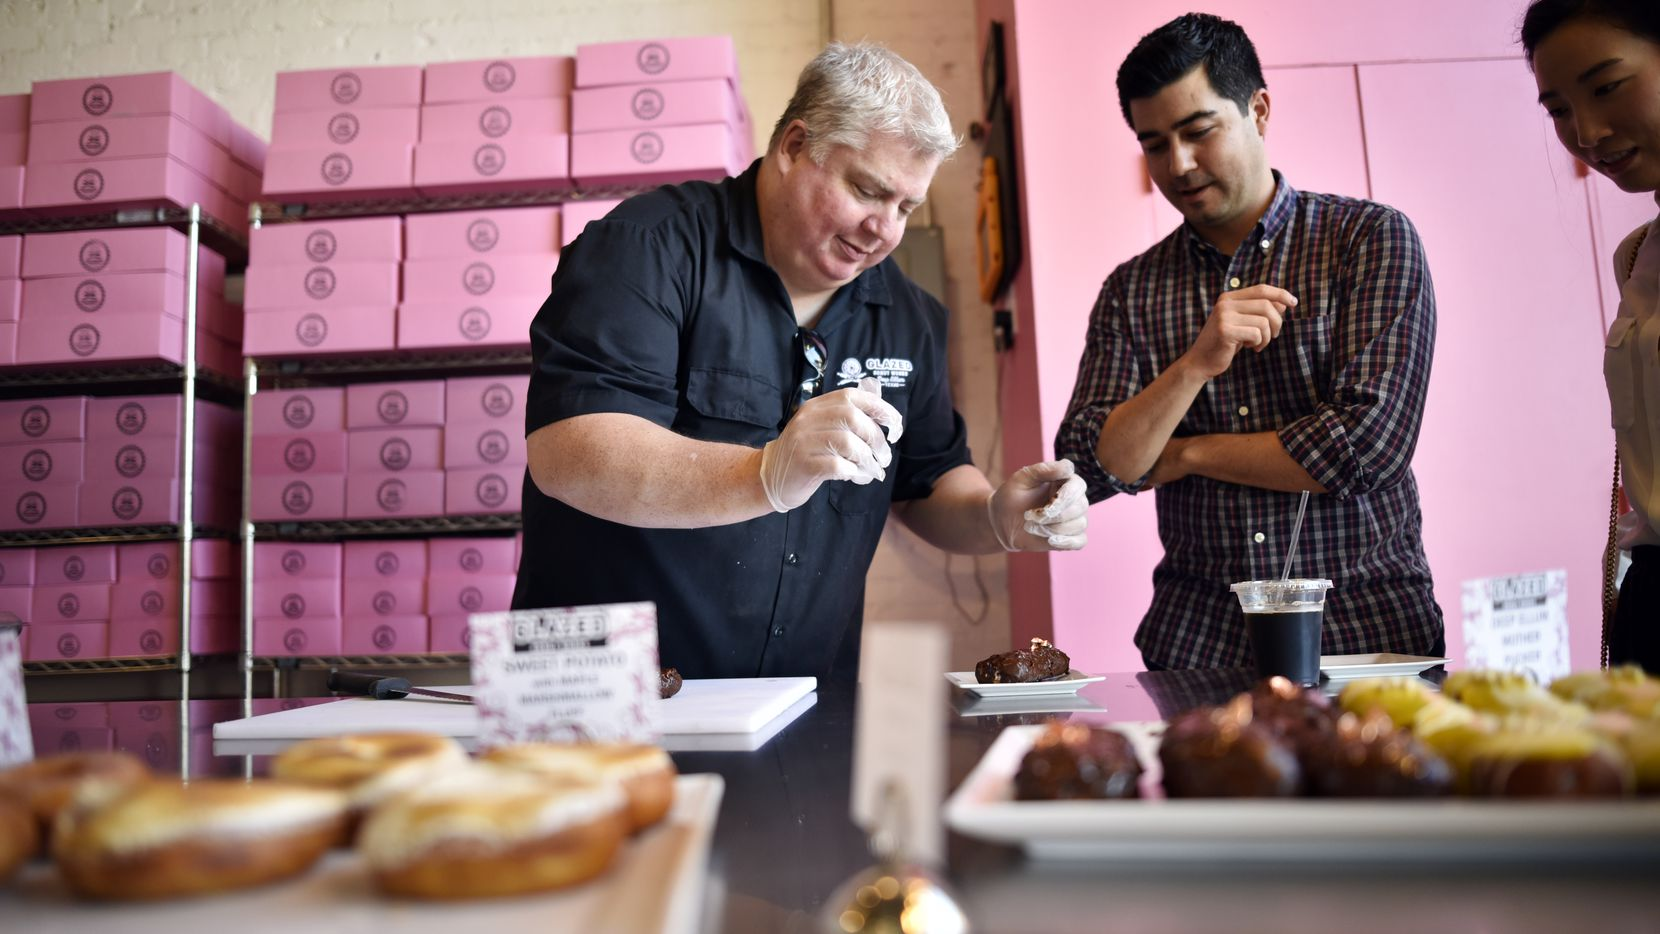 Owner Darren Cameron, left, closed Glazed Donut Works in 2018. He's back with pop-ups in 2020, teasing customers with new recipes.